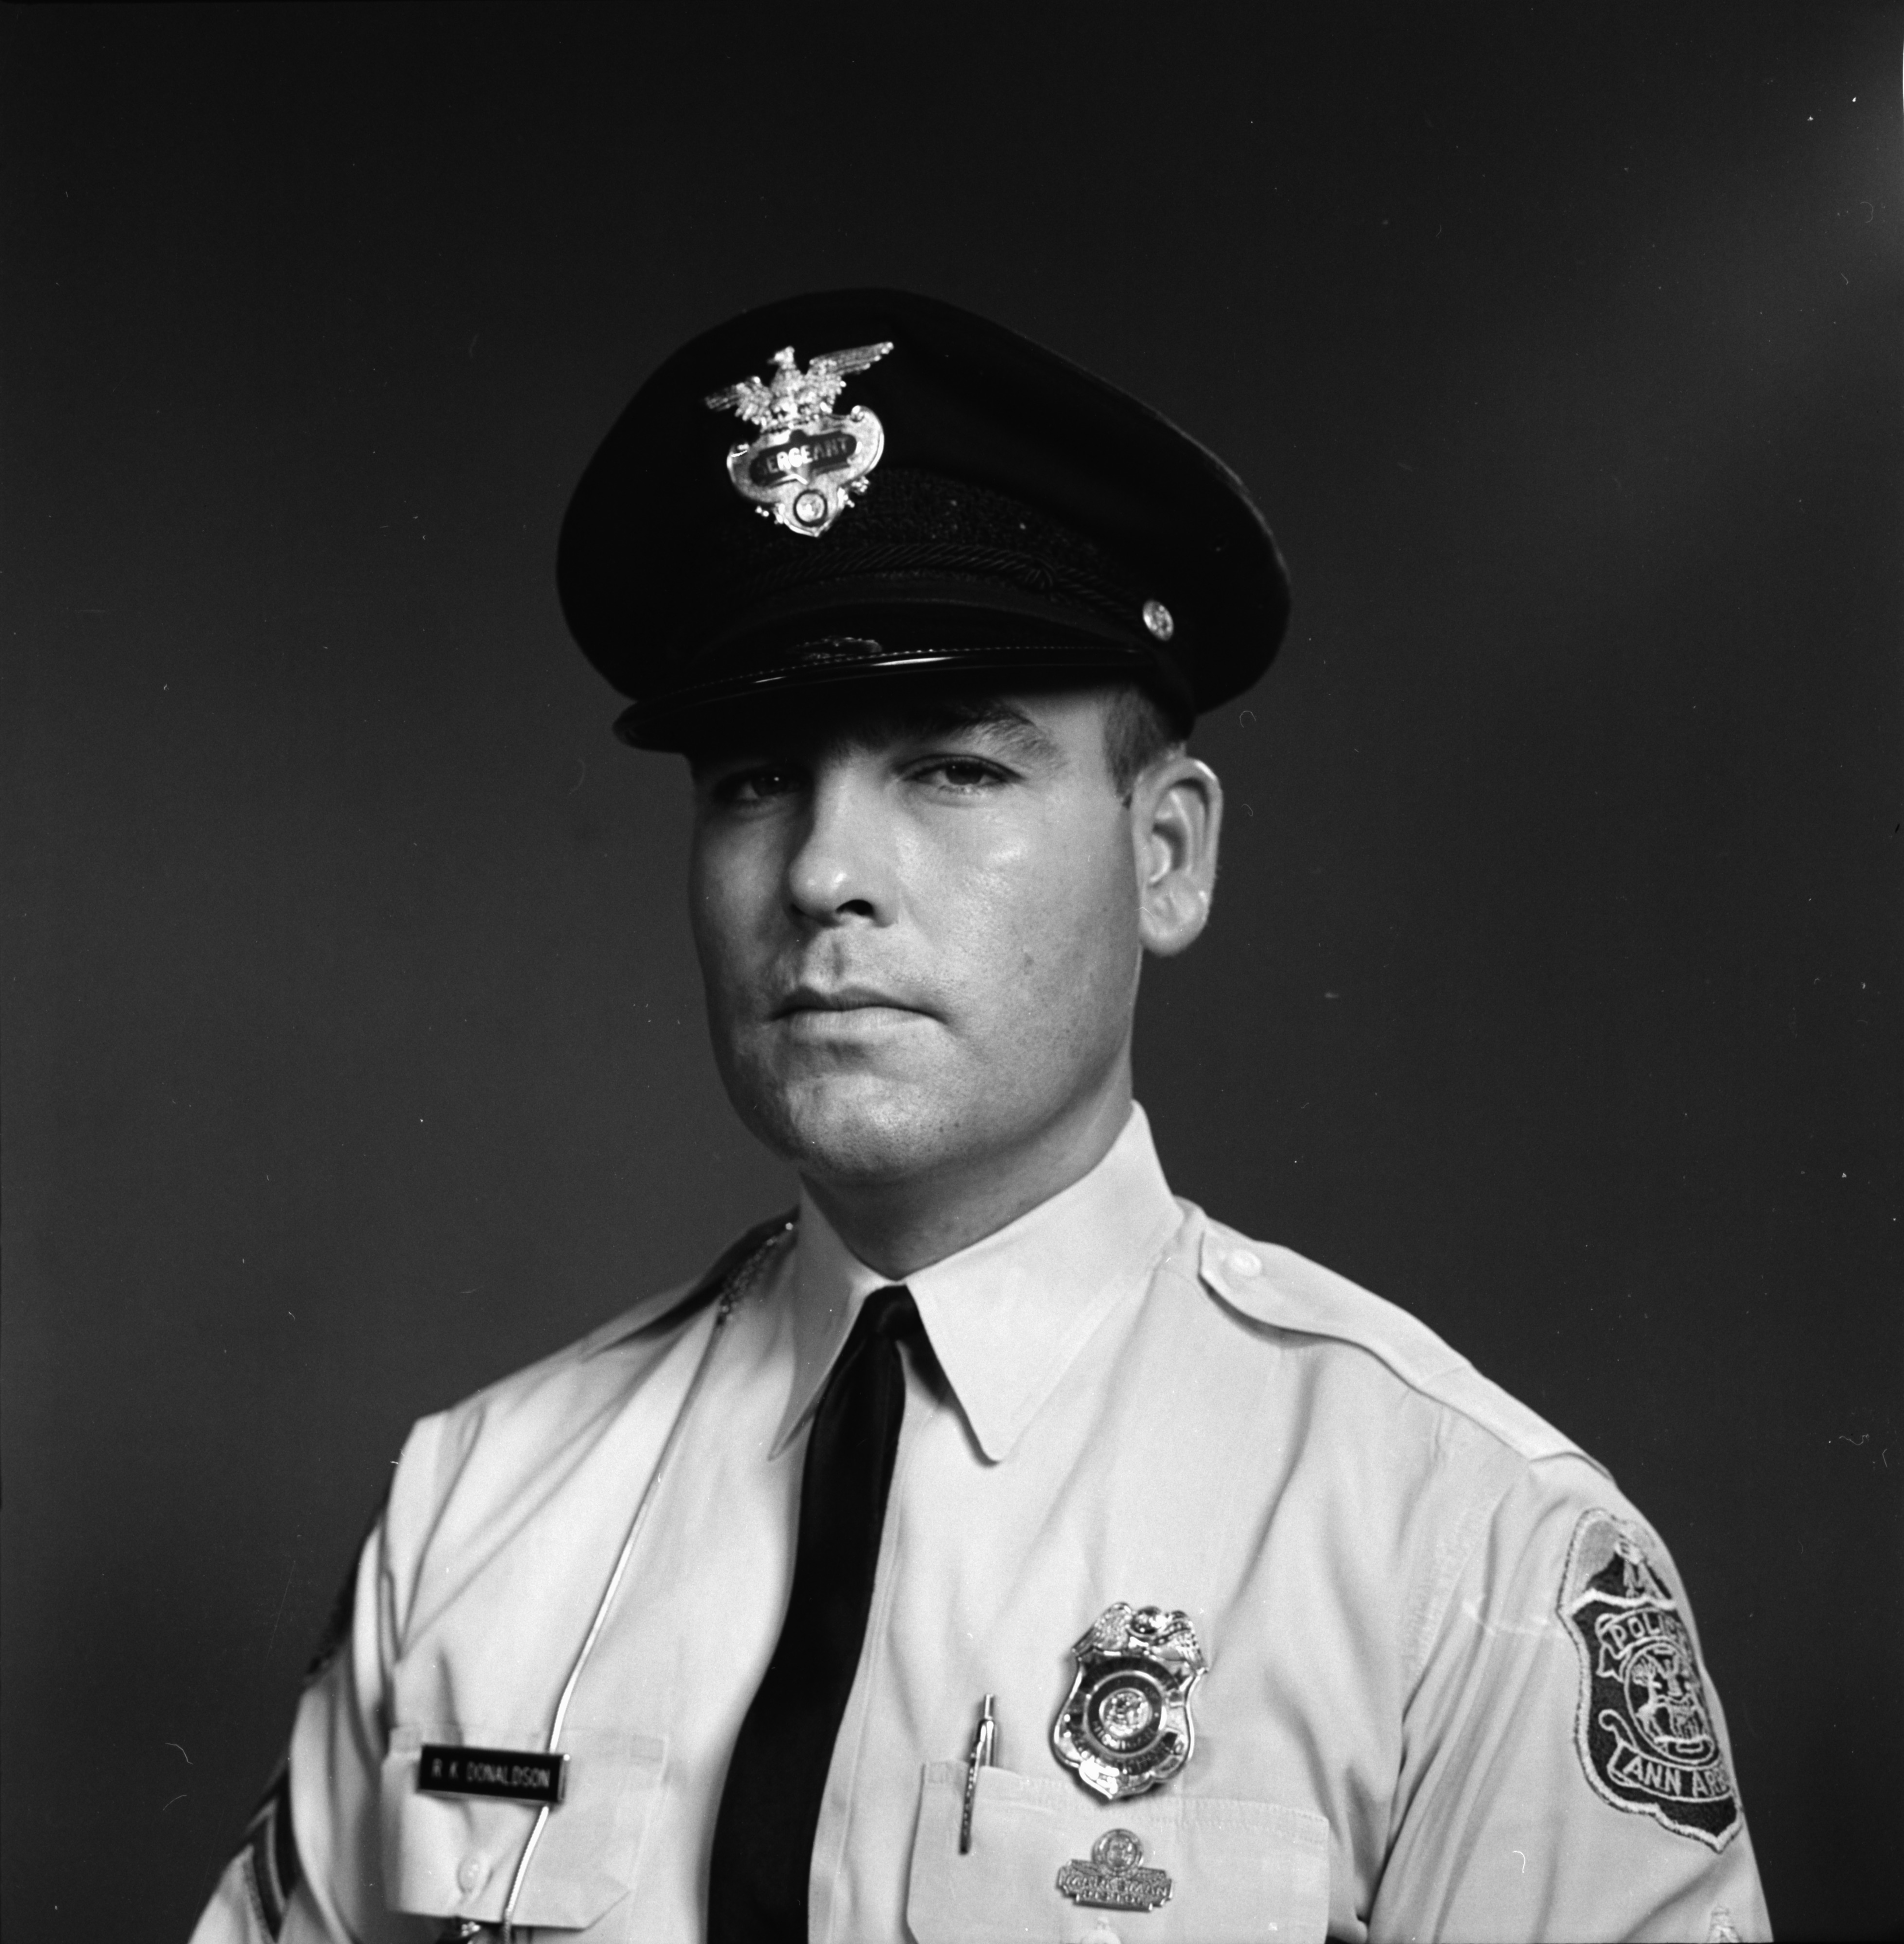 Ann Arbor Police Department Officer Ronald Donaldson, August 1963 image